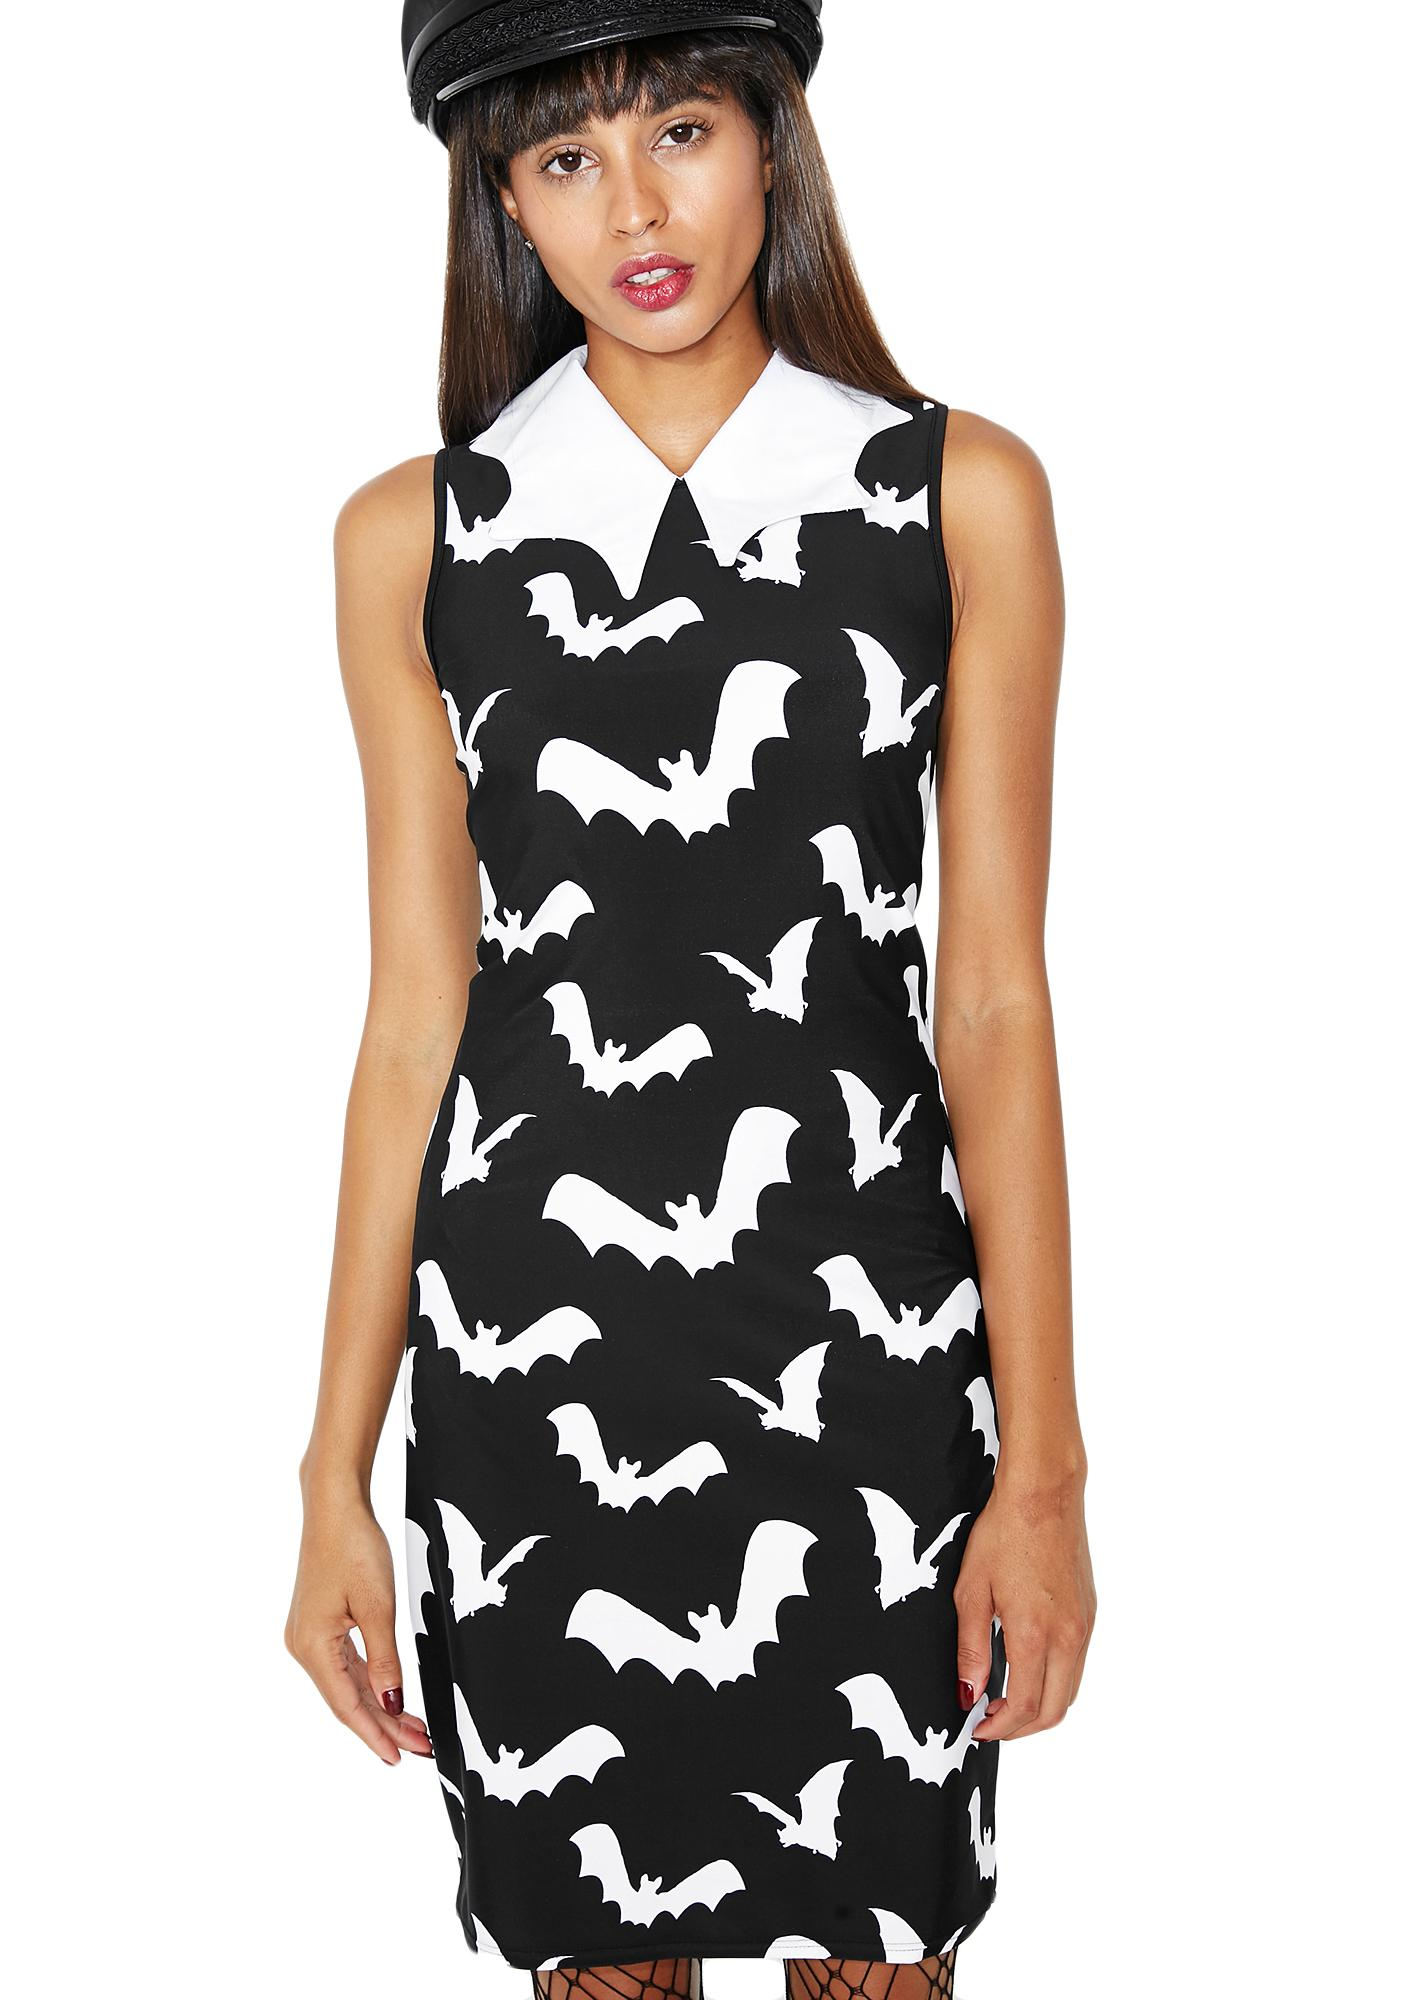 Gone Batty Collared Dress